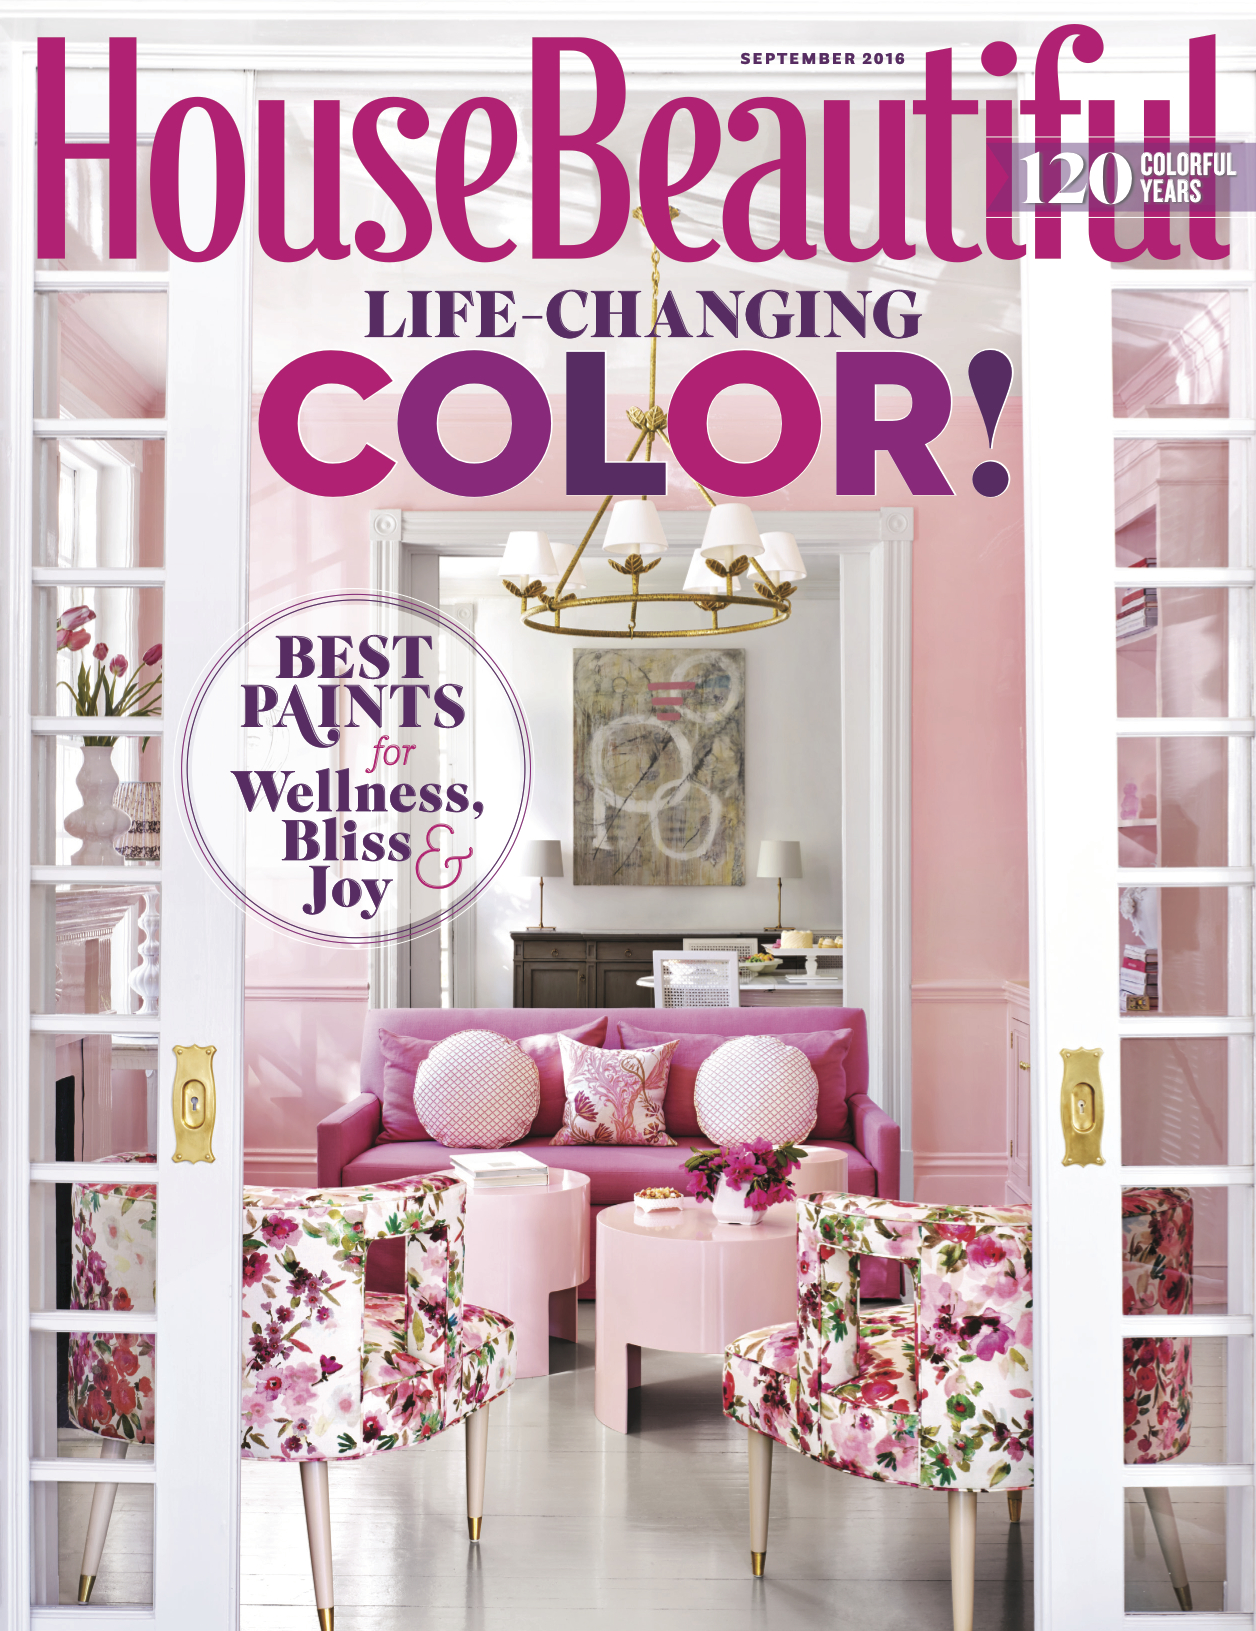 House Beautiful | September 2016